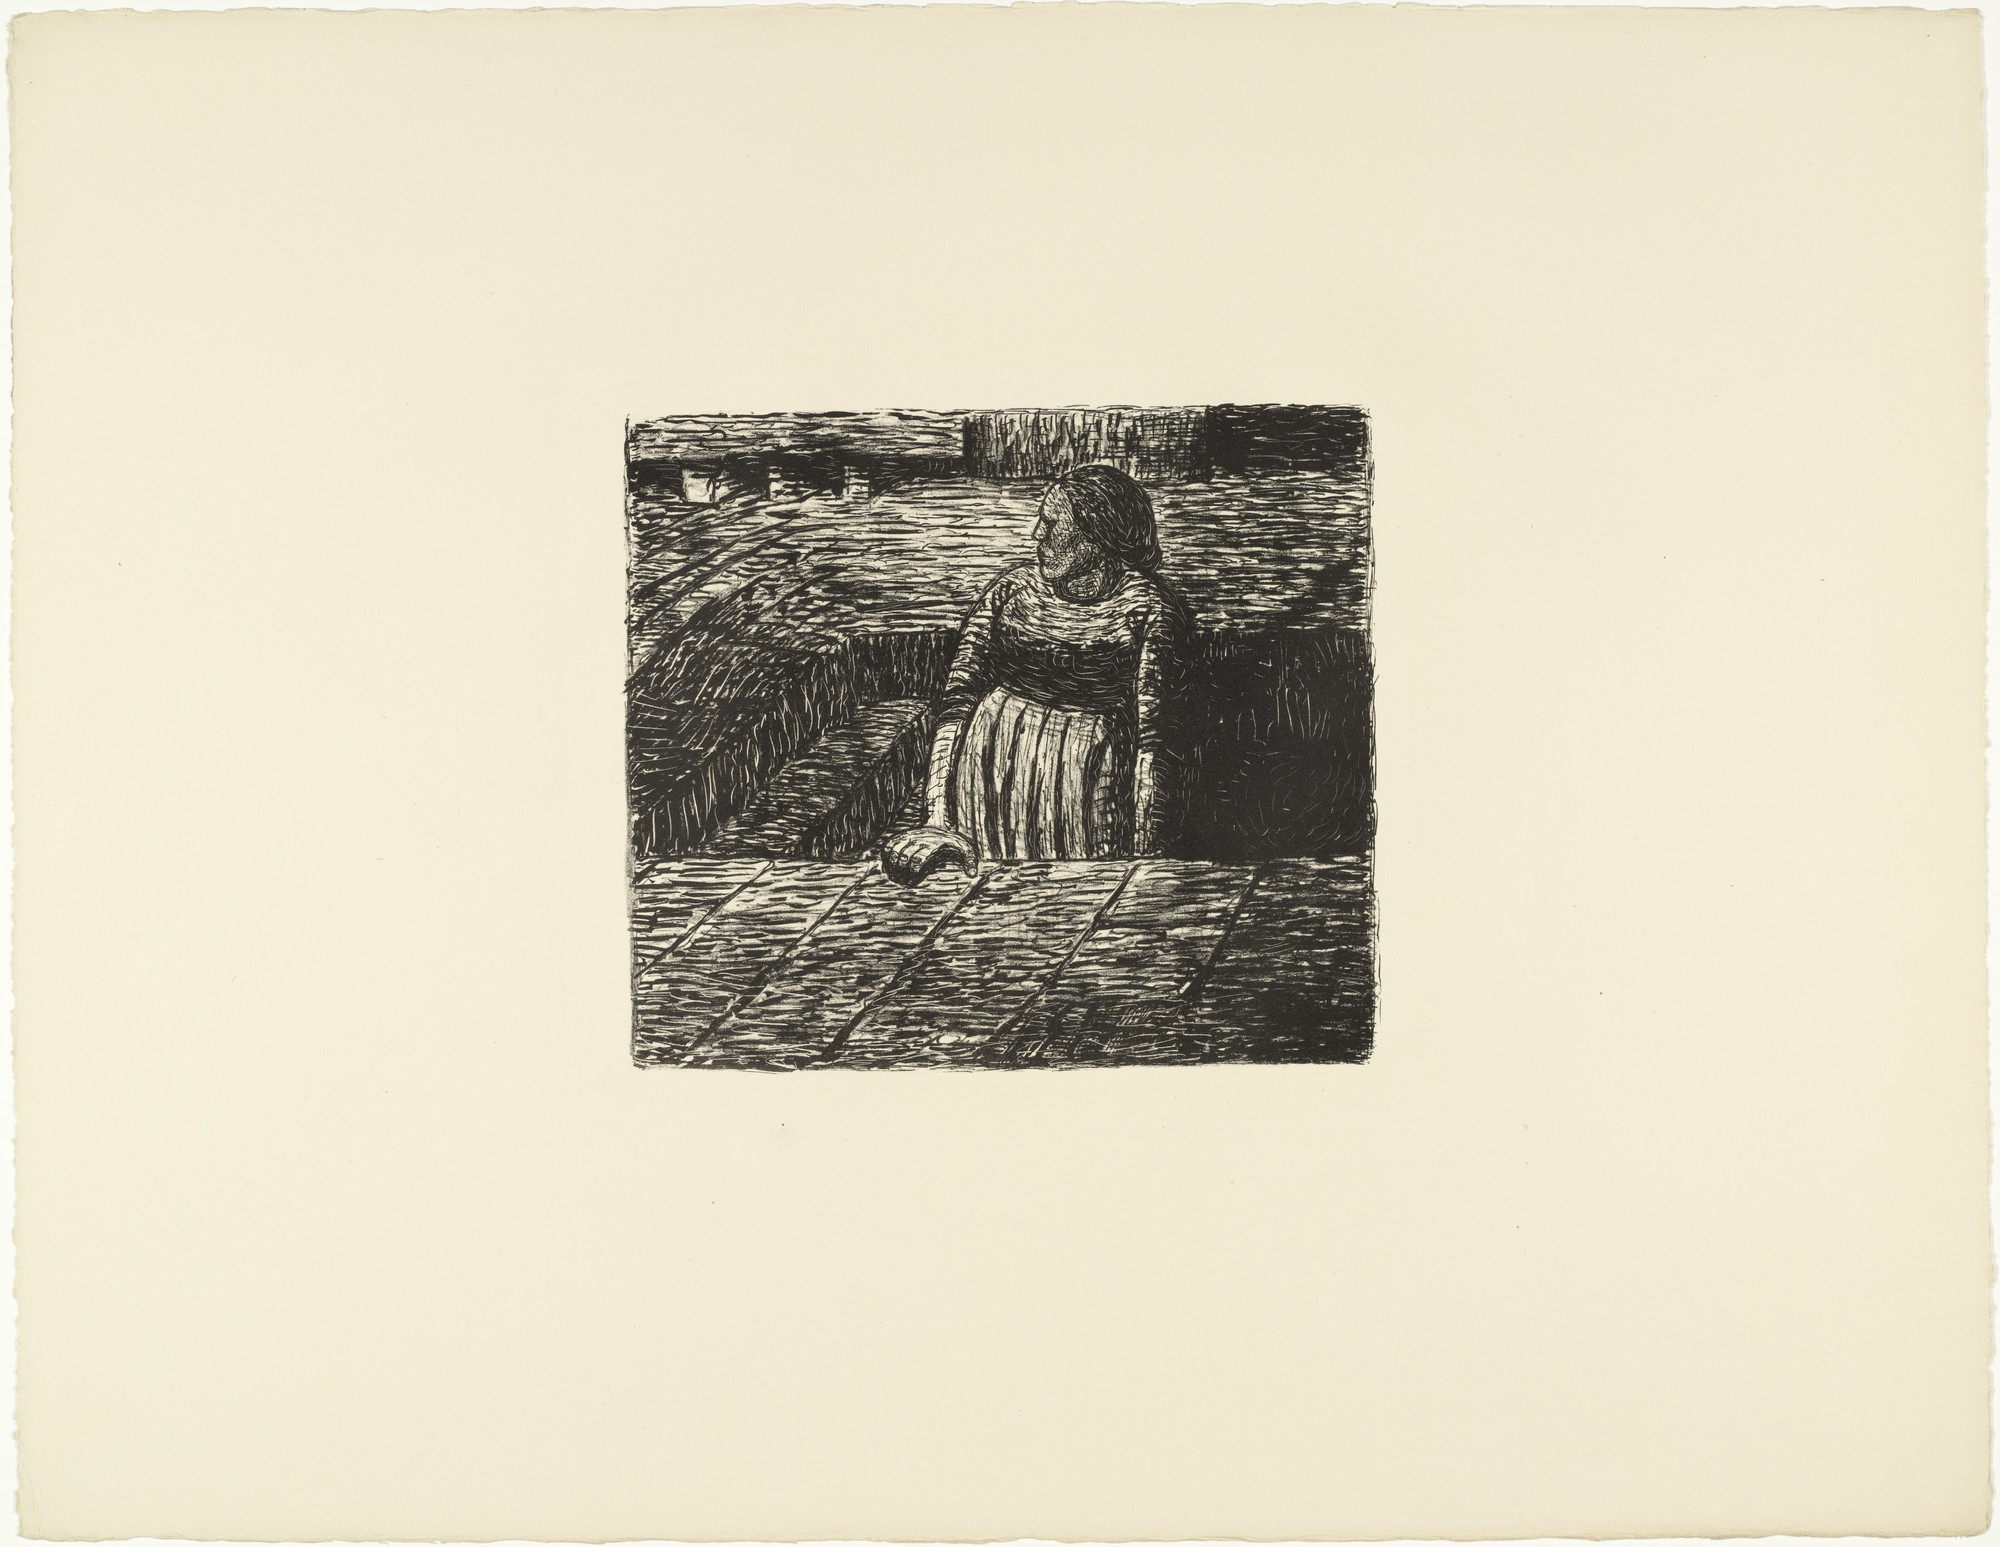 Ernst Barlach. The Dead Day (Der tote Tag). 1912 (prints executed 1910-11)